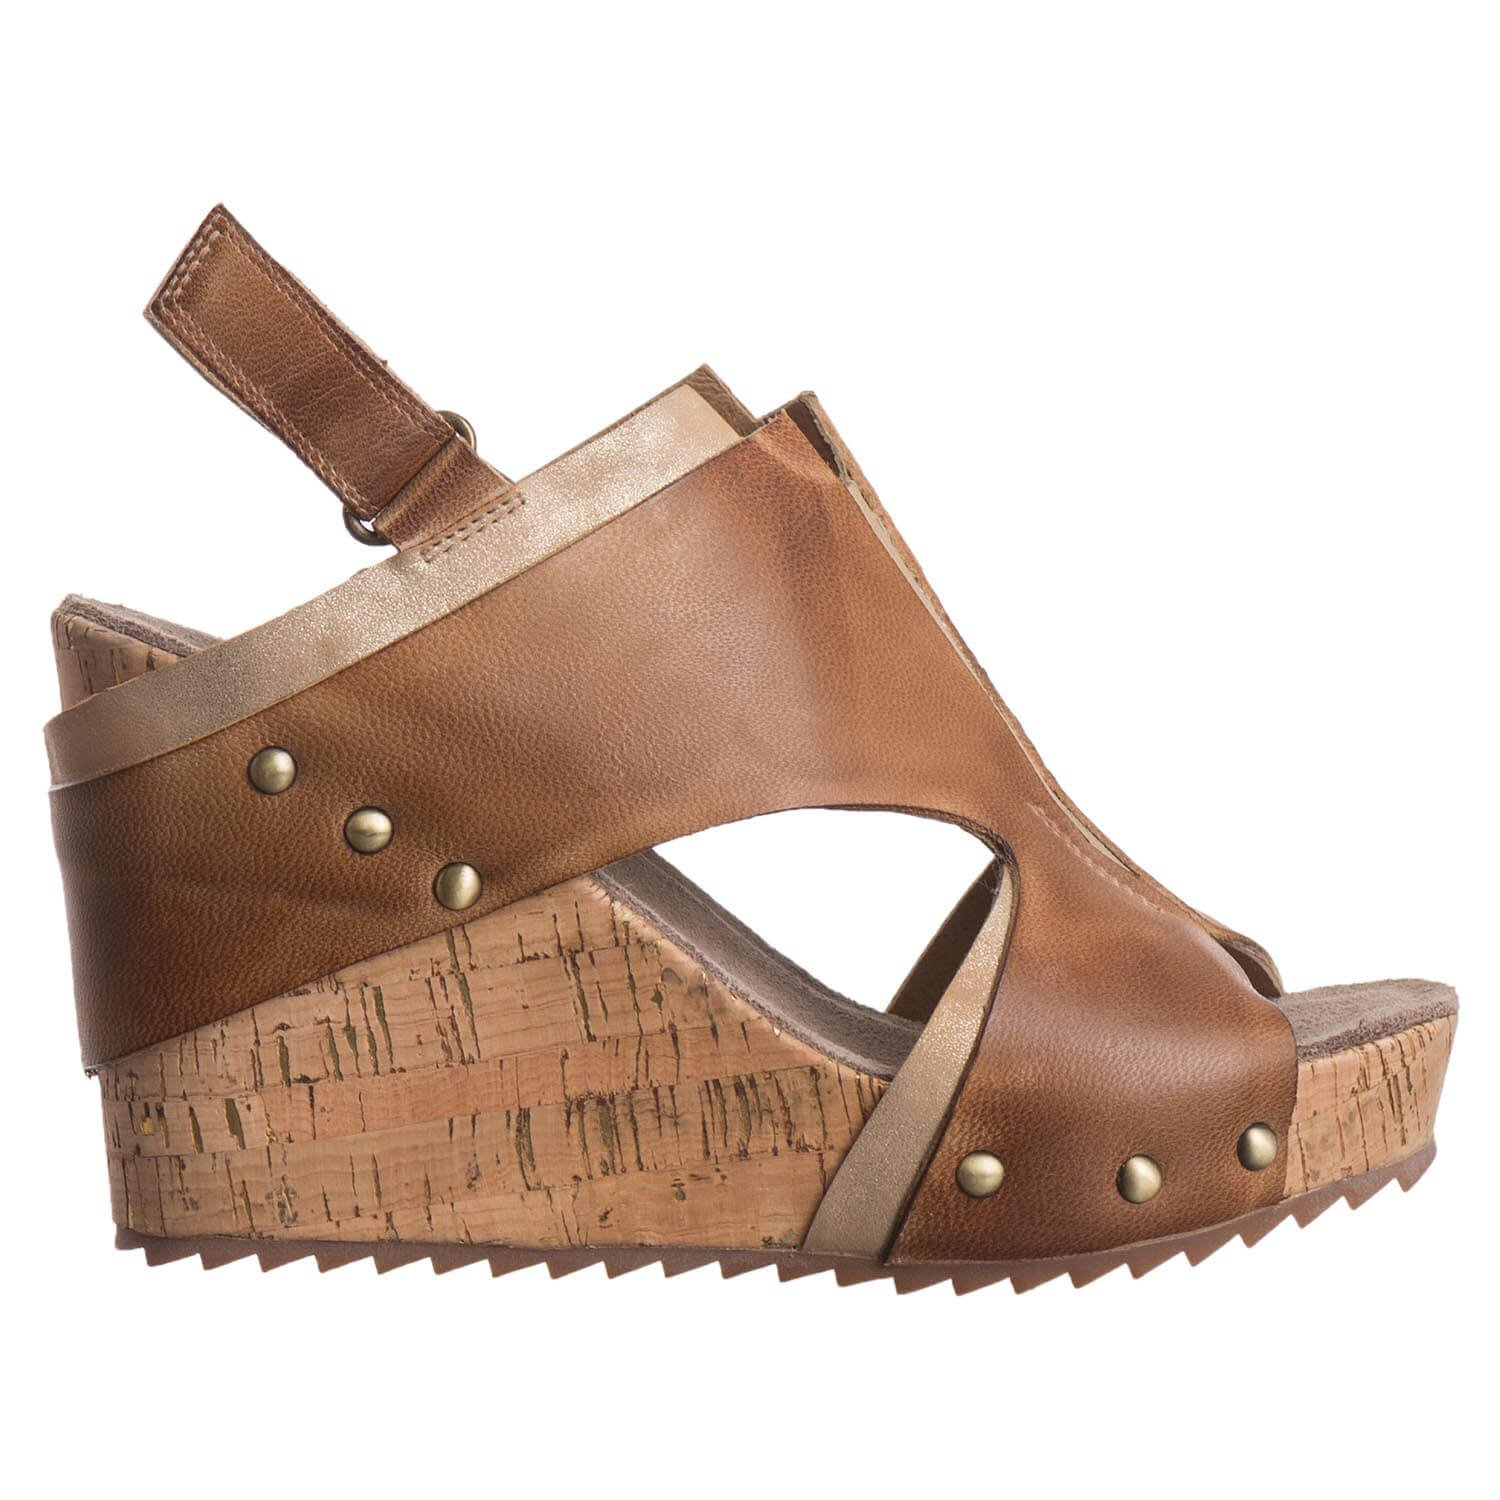 Antelope Women's 734 Leather Ovenlap Cutouts B079G4Y15D 7 B(M) US / 38 EU|Taupe